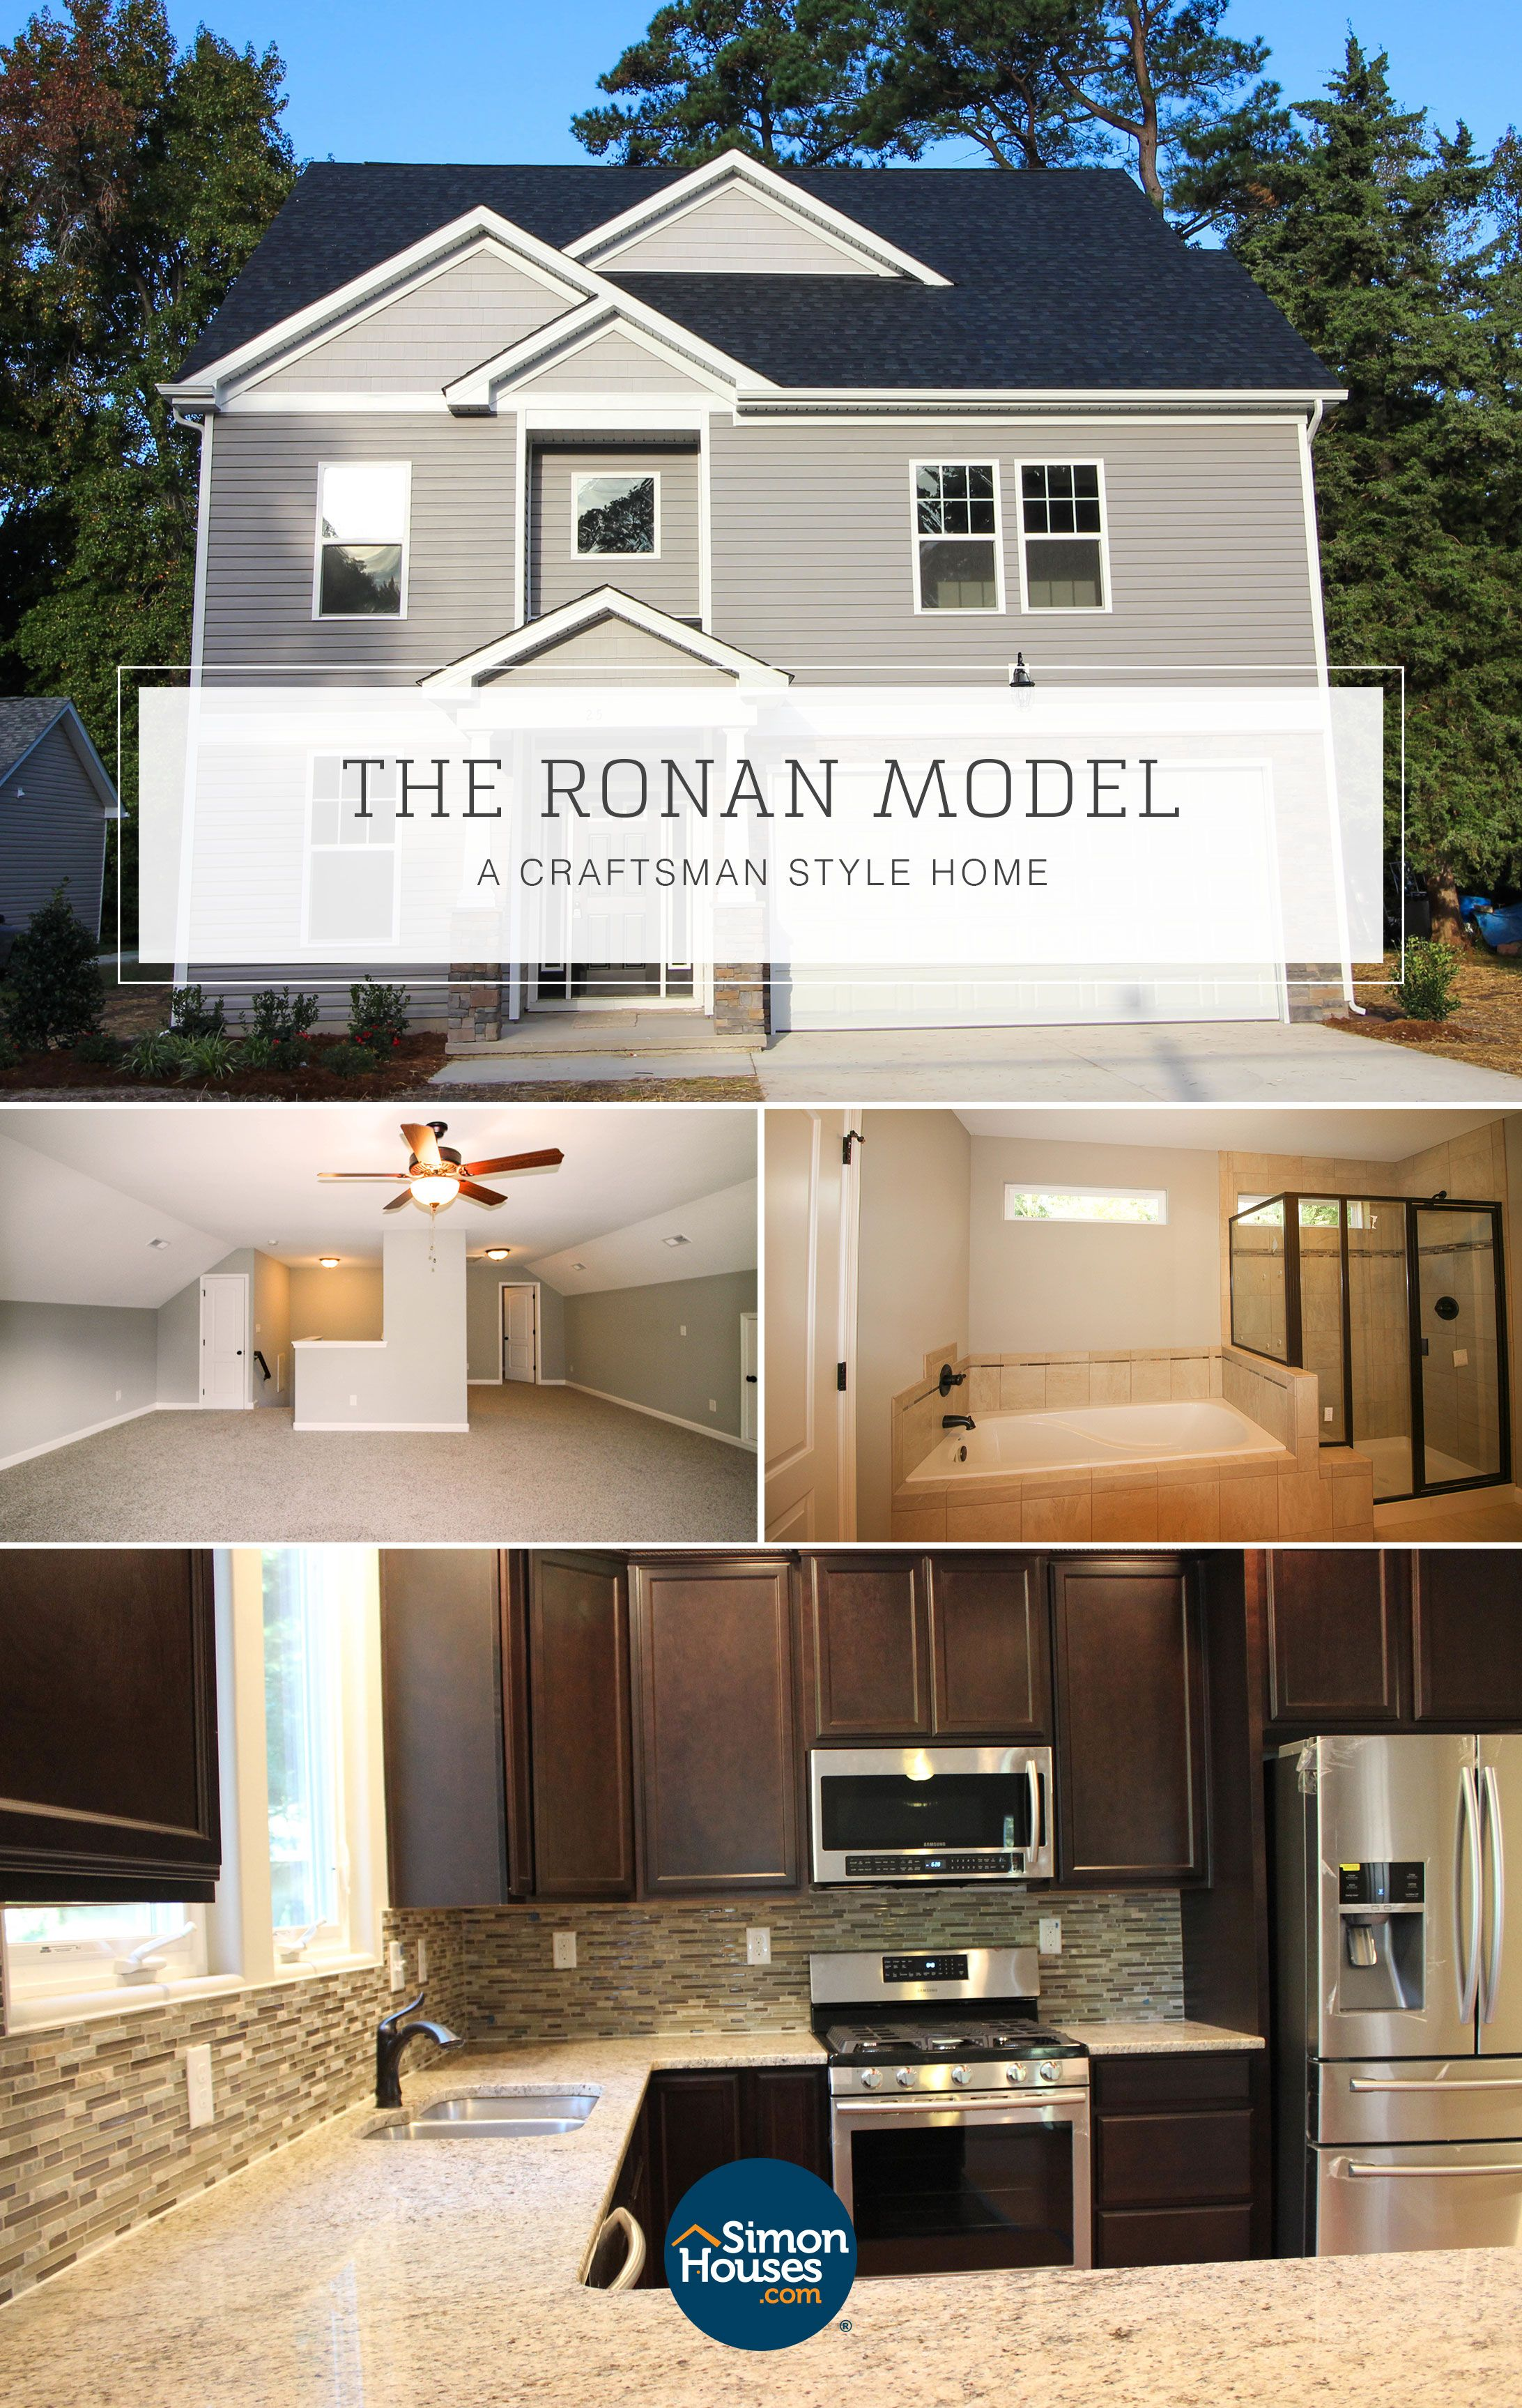 Build This Beautiful Home Model In Chesapeake Or Suffolk With An Amazing Local Builder You Can Build On Your Own Custom Built Homes Craftsman Style Home Home